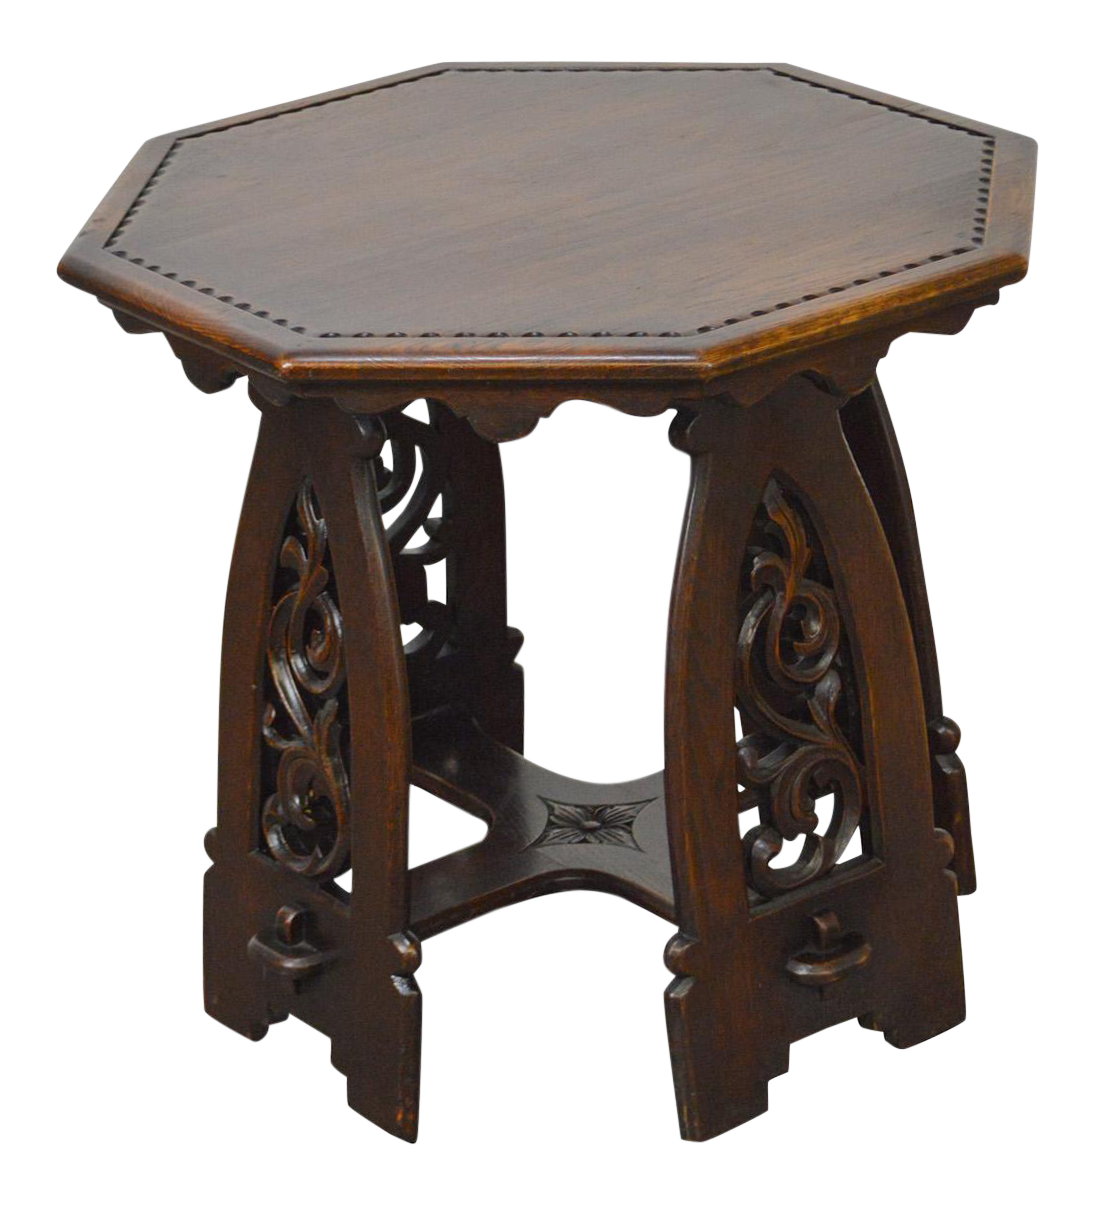 Antique Gothic Oak Rose Valley Inspired Octagon Carved Taboret Side Table    Chairish